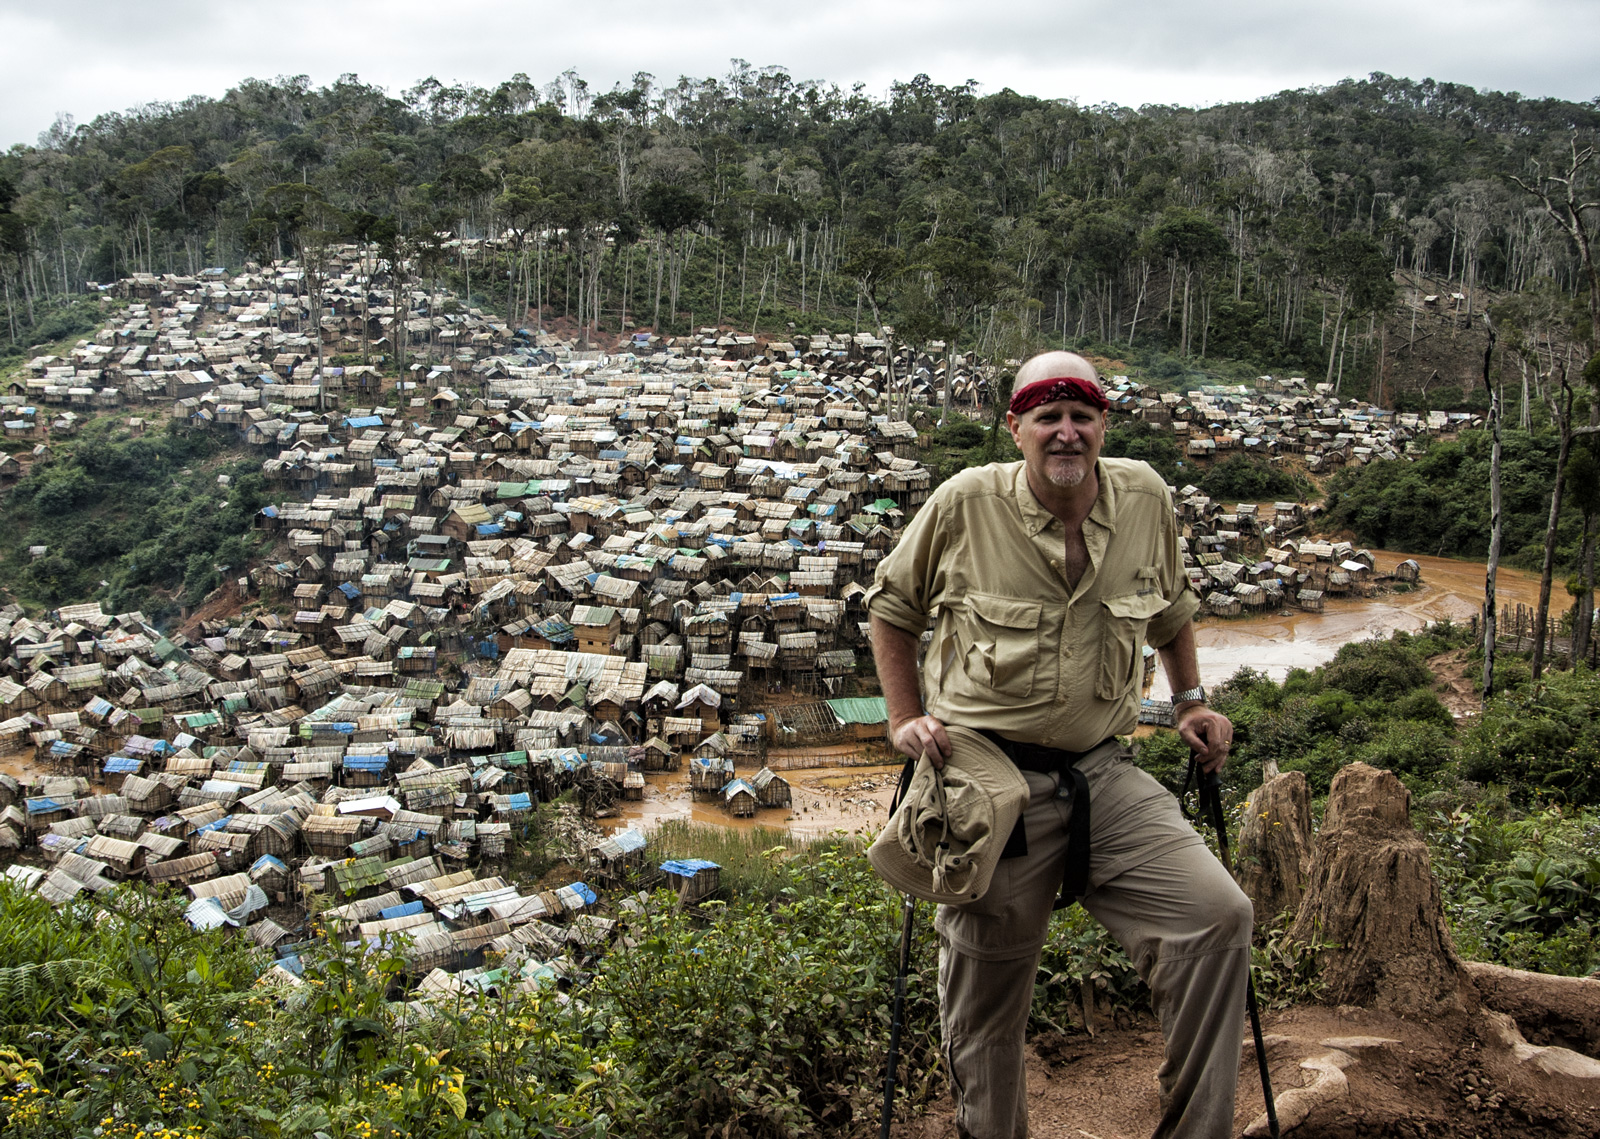 Lotus Gemology's Richard Hughes above Madagascar's Moramanga village. The new Madagascar ruby find is believed to be in this area. Photo: R.W. Hughes, September 2005.